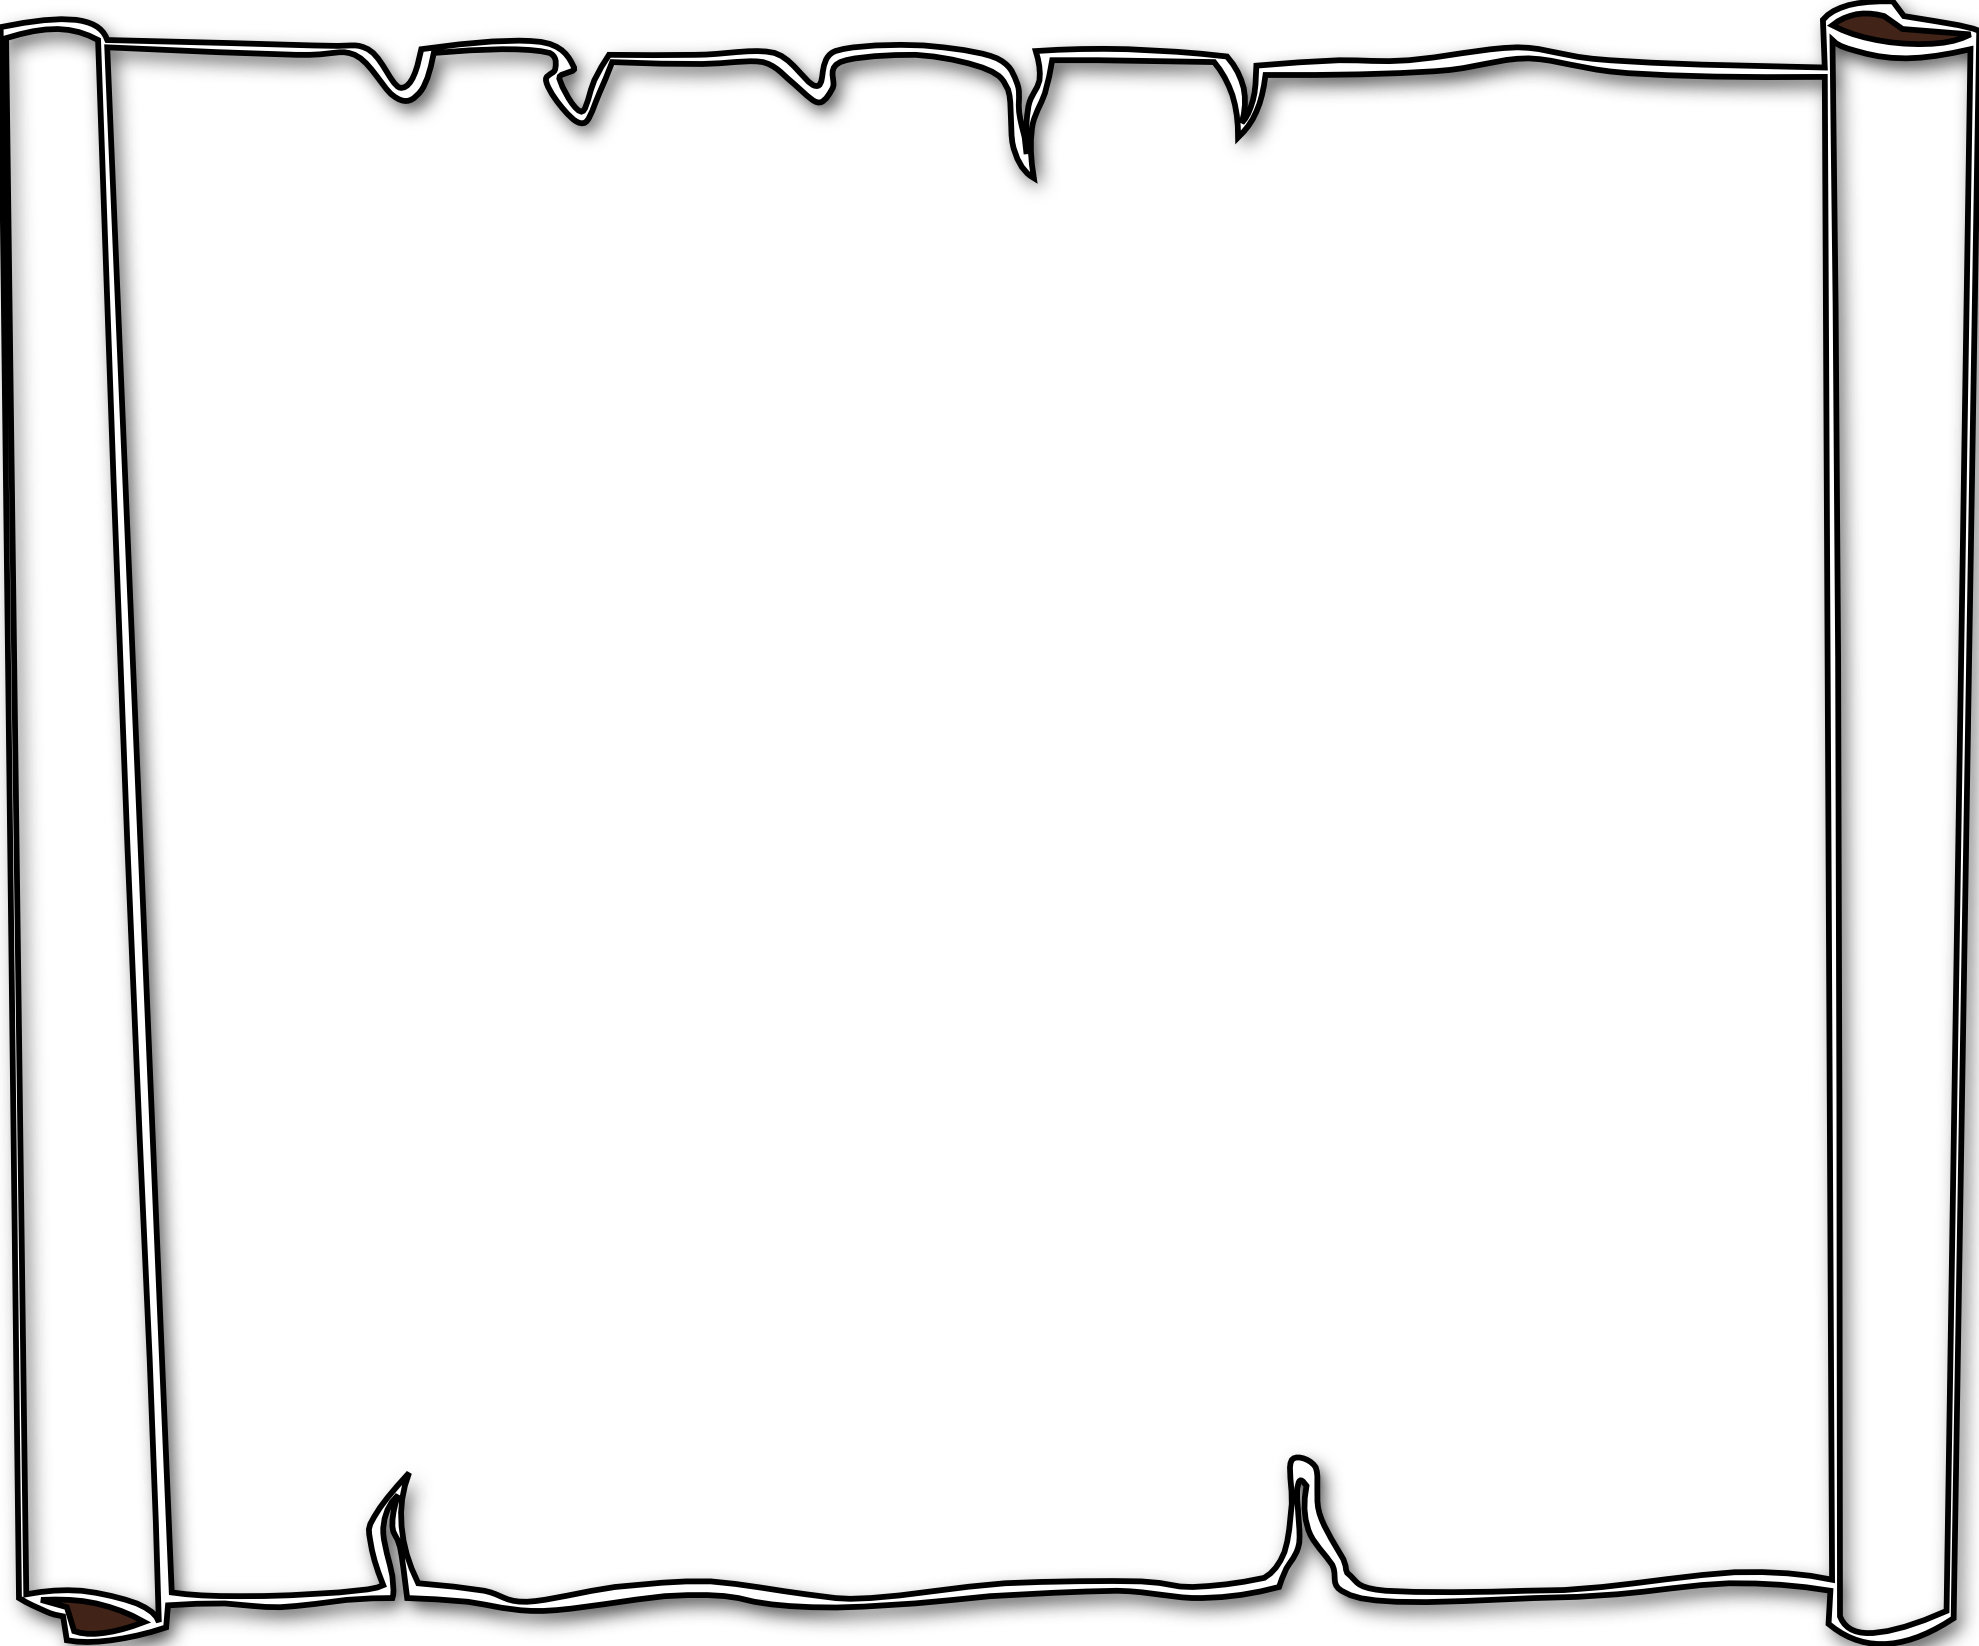 Line Art Word : Books border clipart black and white panda